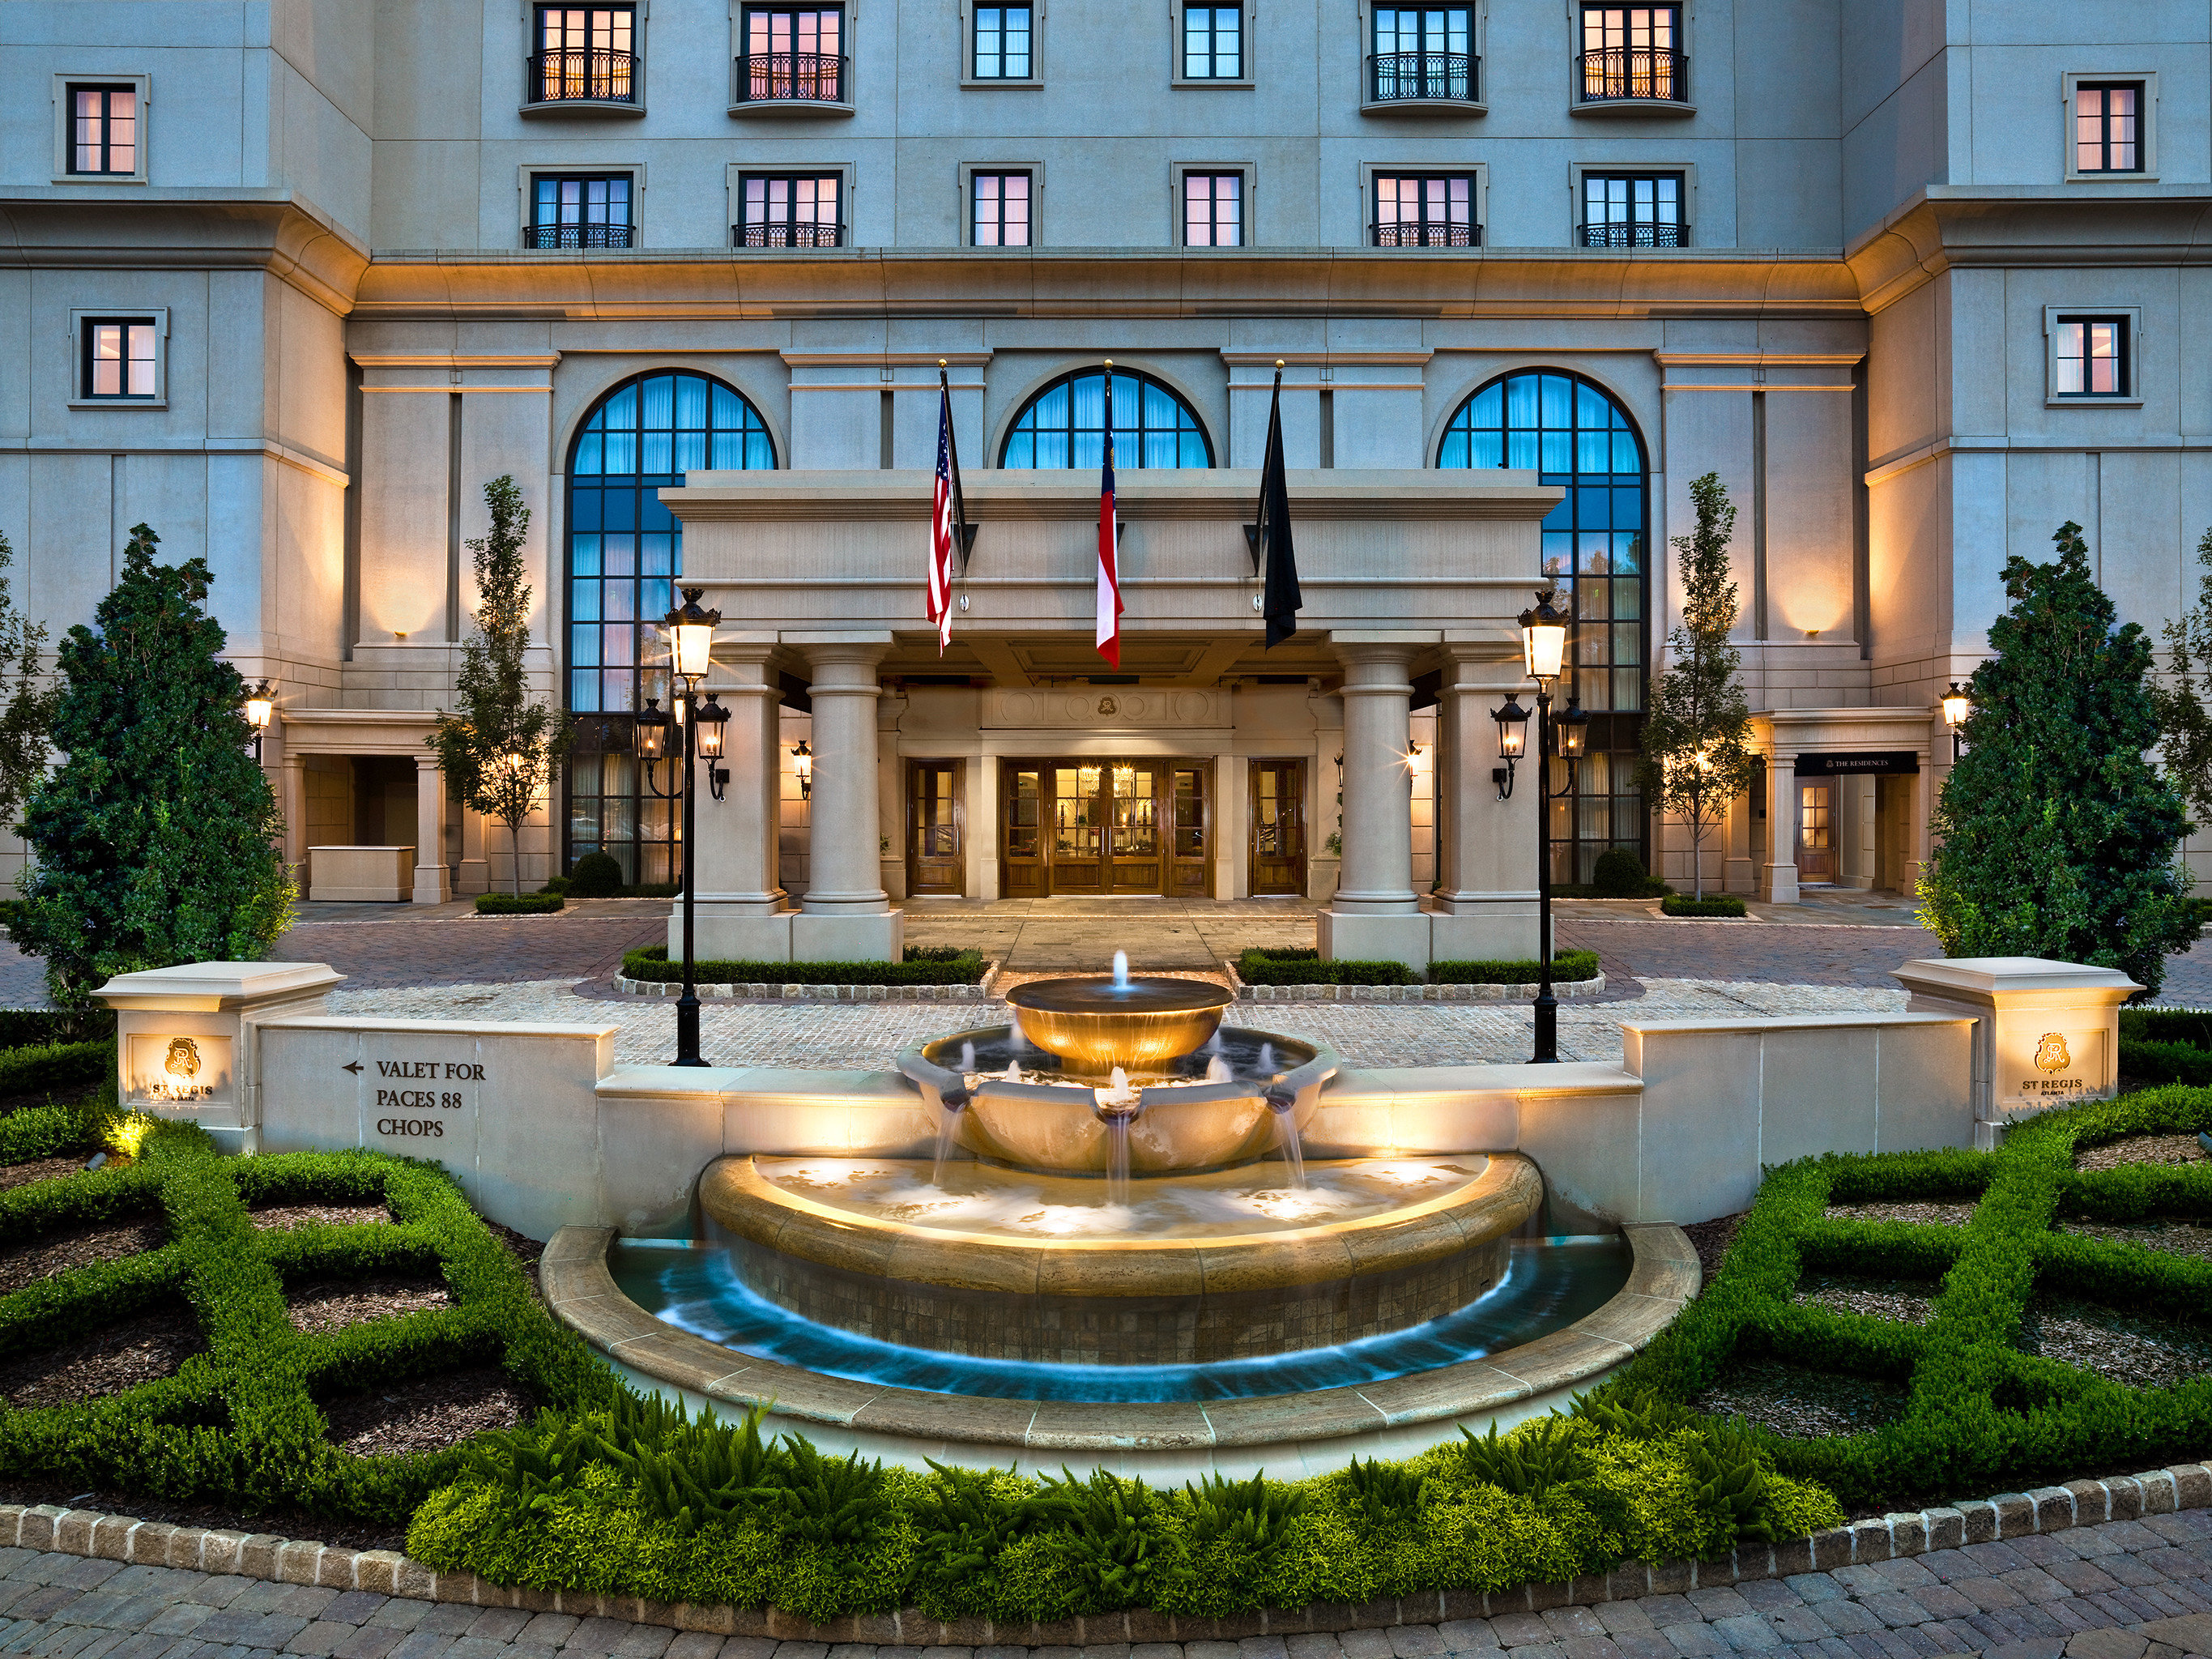 building Courtyard fountain mansion plaza water feature home palace Lobby Resort stone